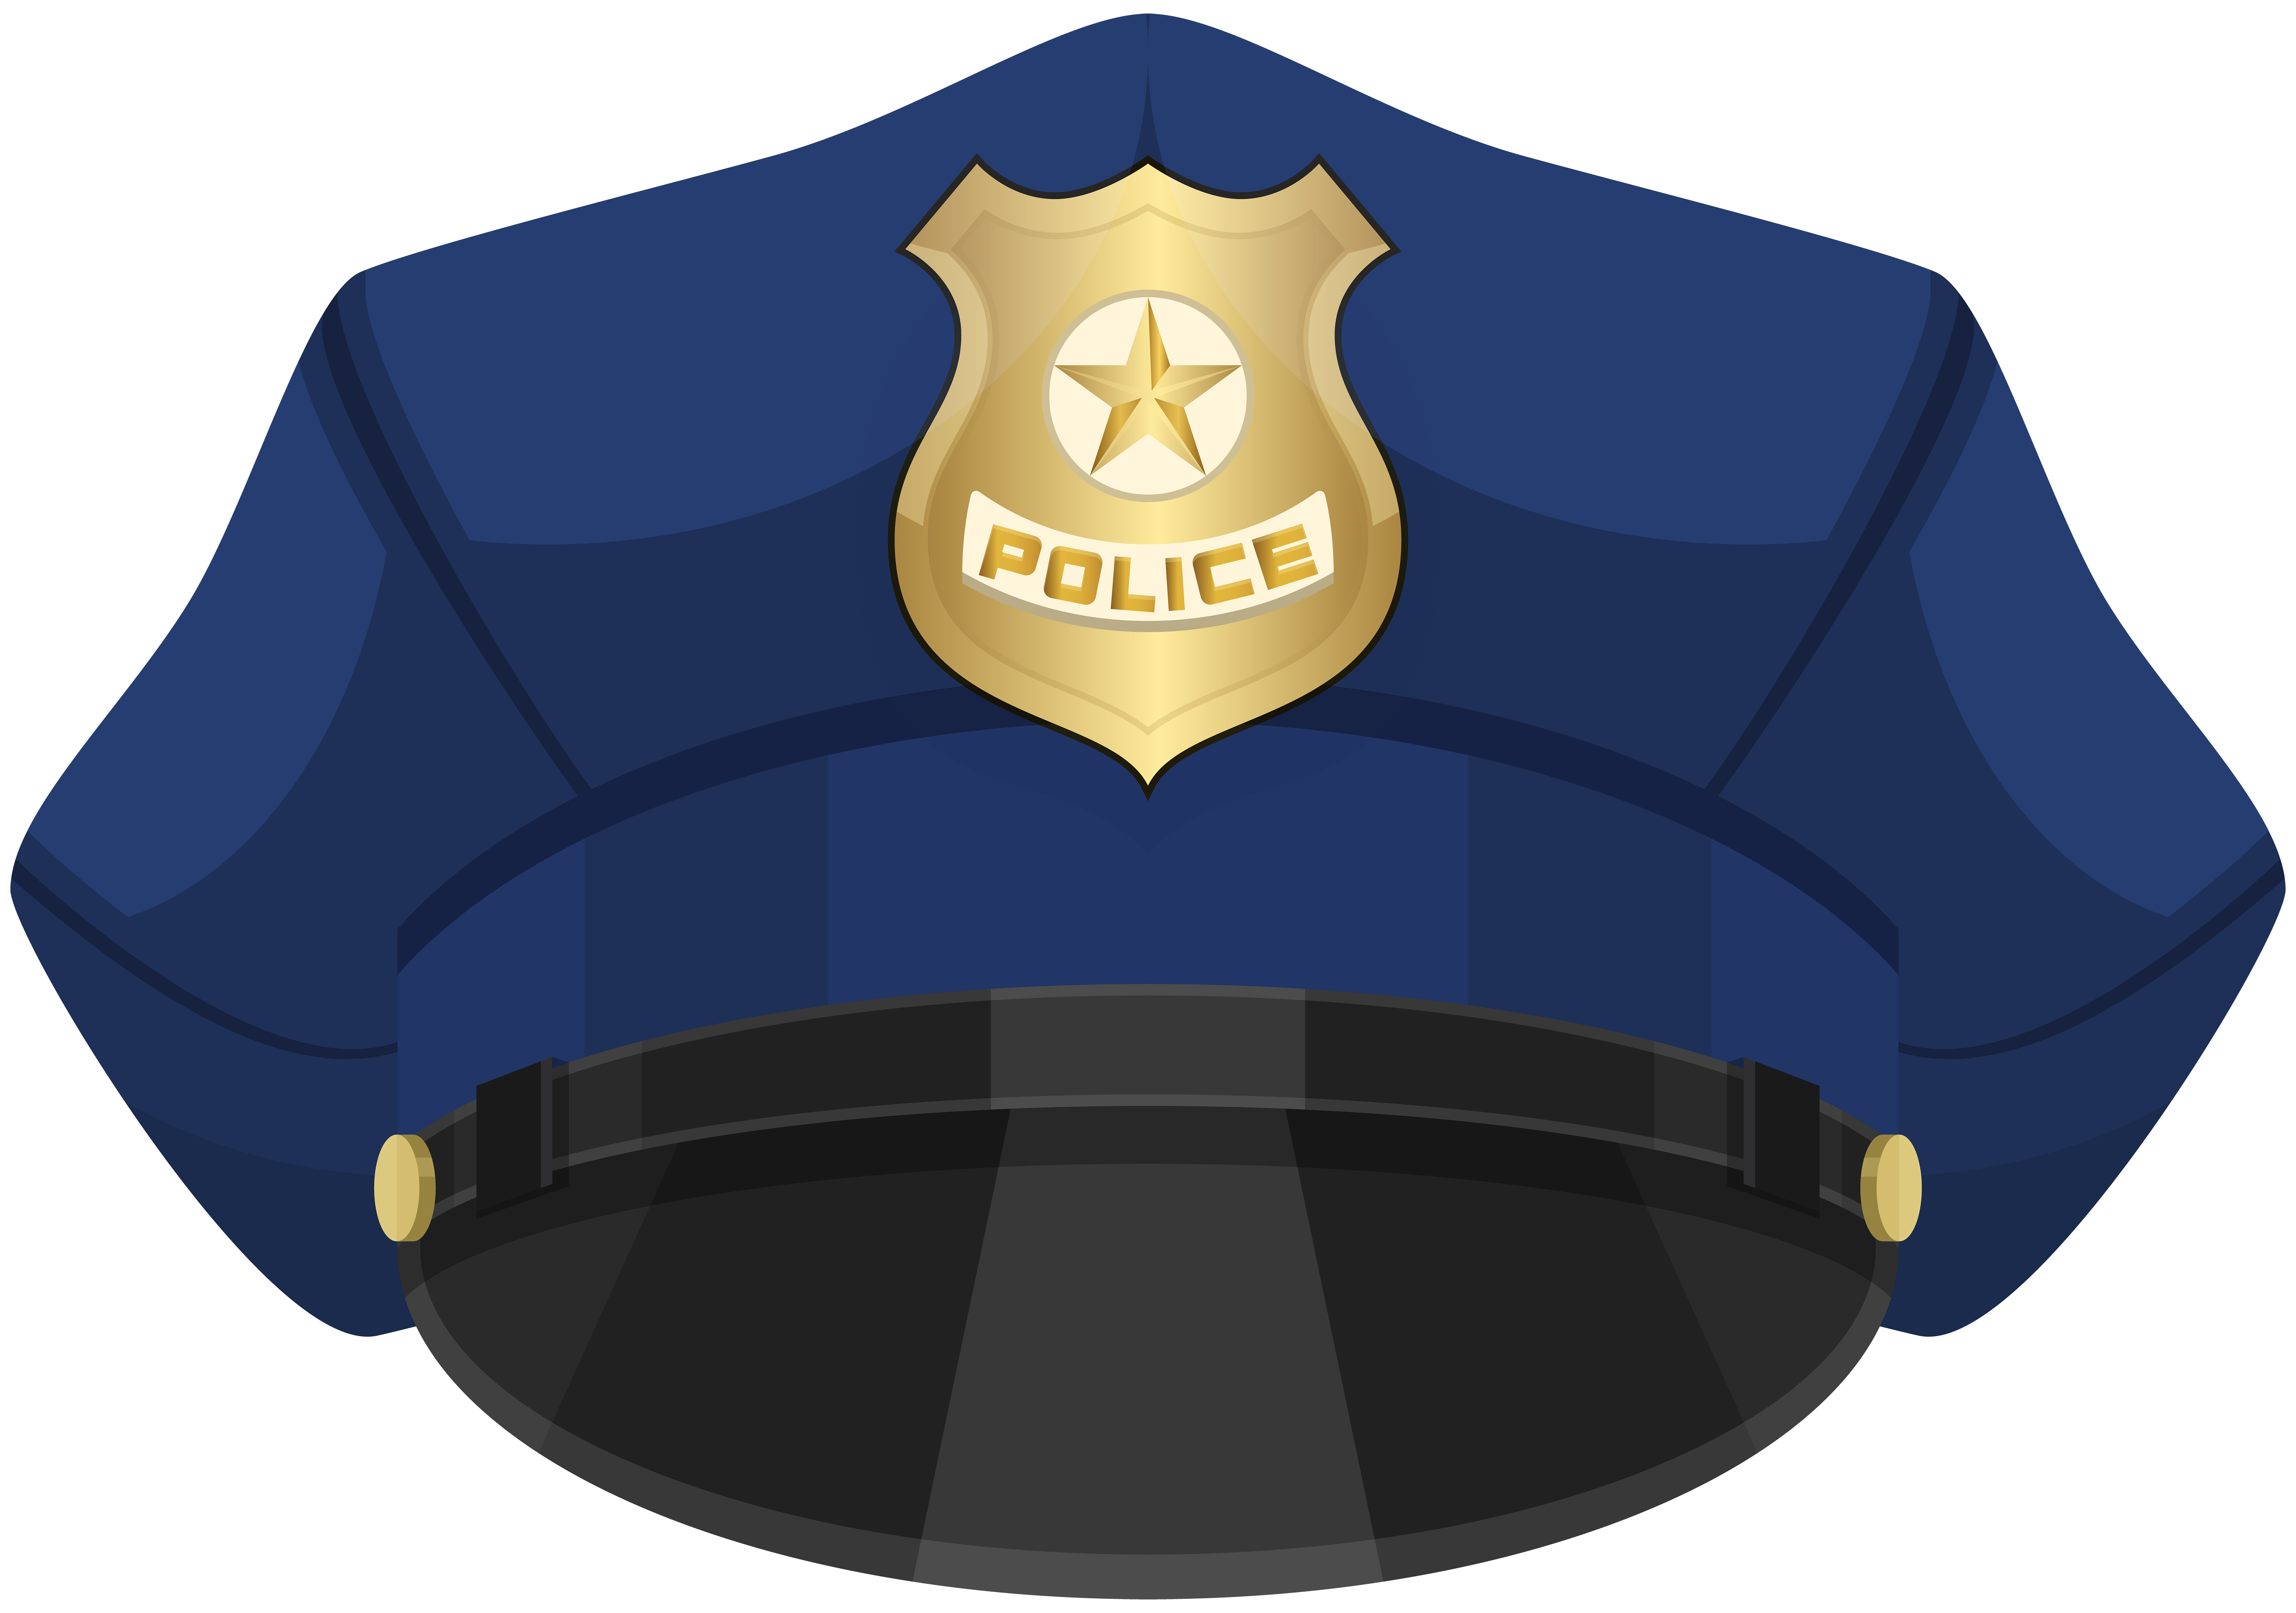 Hat png clip art. Hats clipart police